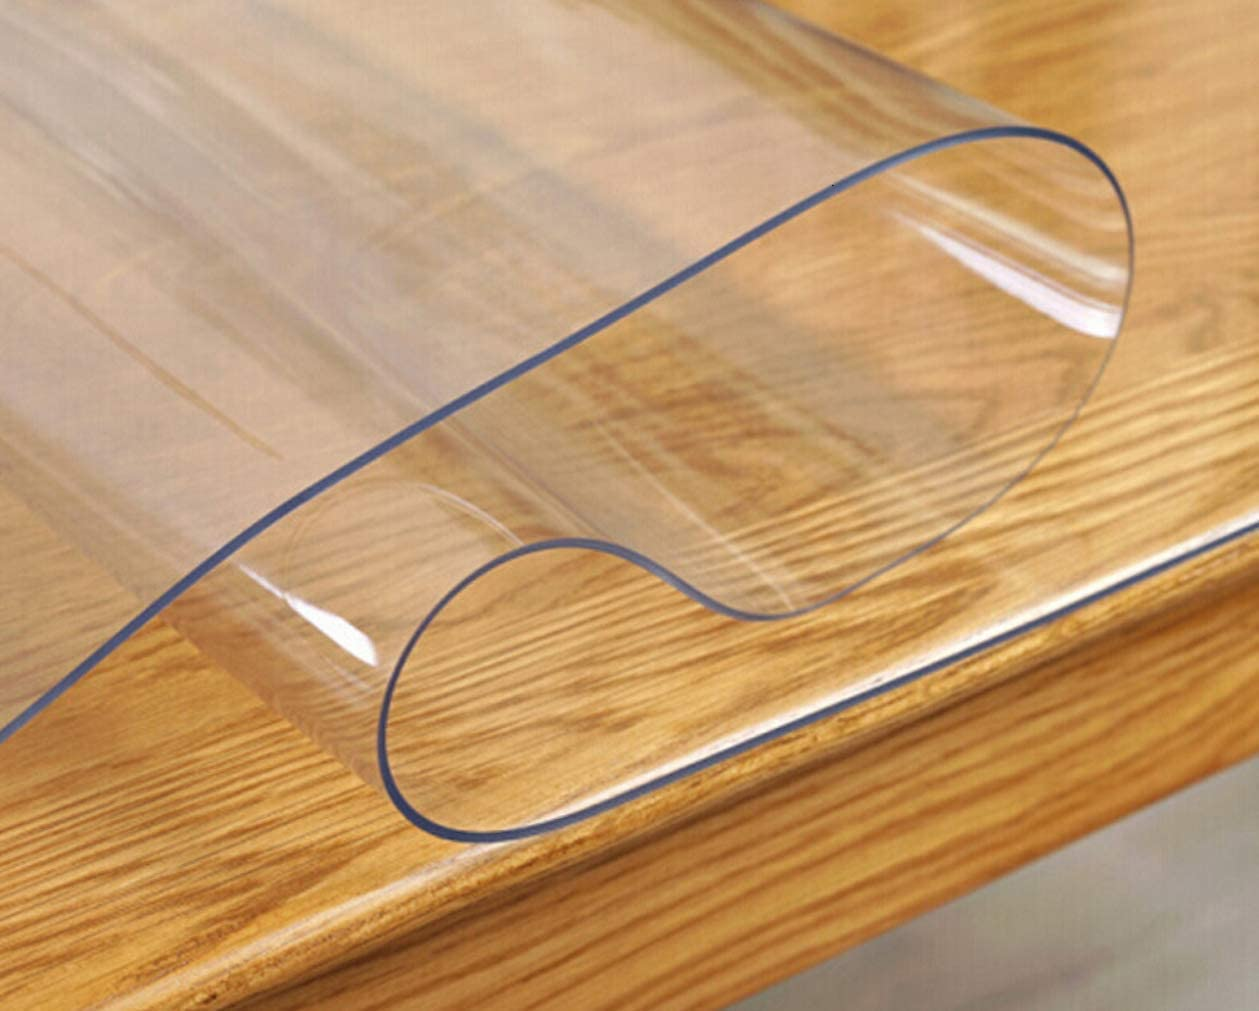 2 Sets 16 x 24 Inch Clear Table Pads Desk Cover Mat Plastic Table Protector PVC Tablecloth Cover Vinyl Table Cloths Waterproof Wipeable Furniture Topper Desk Writing Pads for Computer, Coffee Table